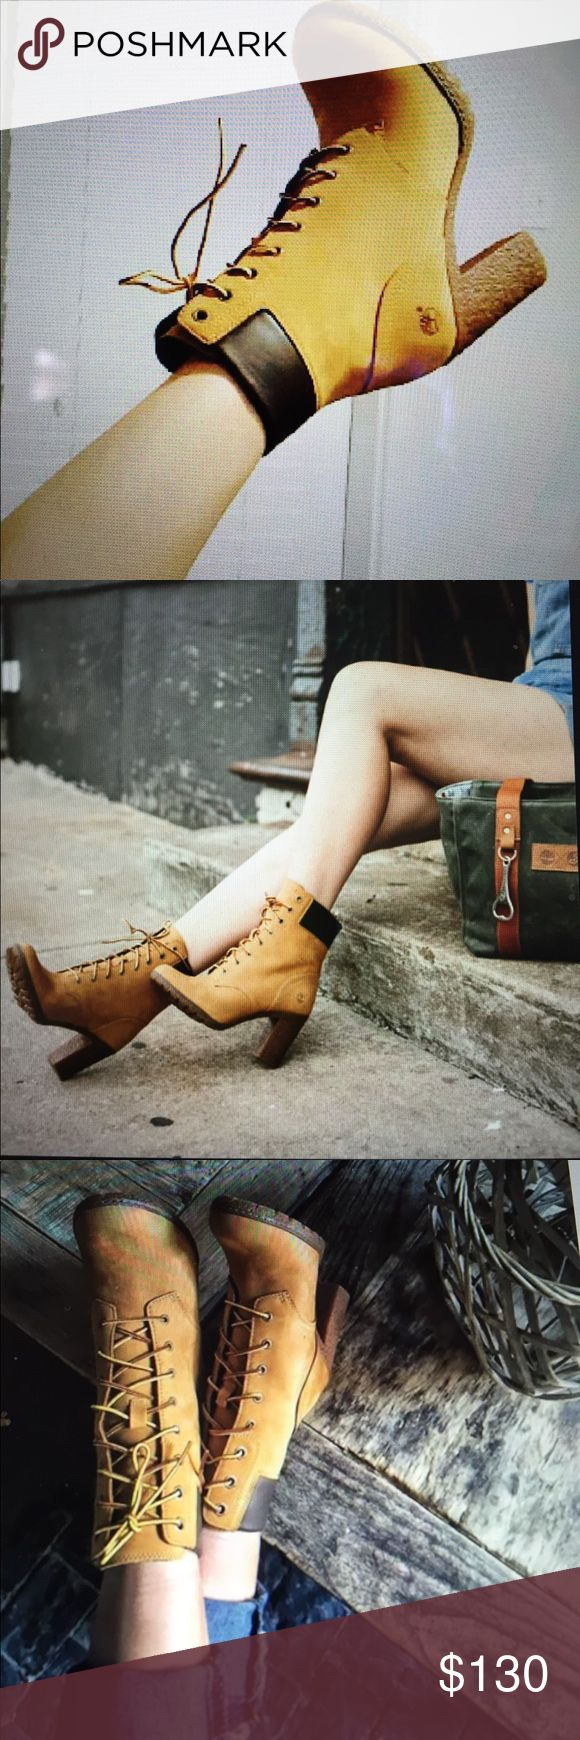 Timberland Glancy Boot in Wheat Sturdy heels and textured lug outsoles let you stride with confidence, while The streamlined lacing blends classic Timberland boot styling with a modern, feminine edge. BNWOT. Never worn in or outdoors. Never tried on. Mint condition Timberland Shoes Heeled Boots